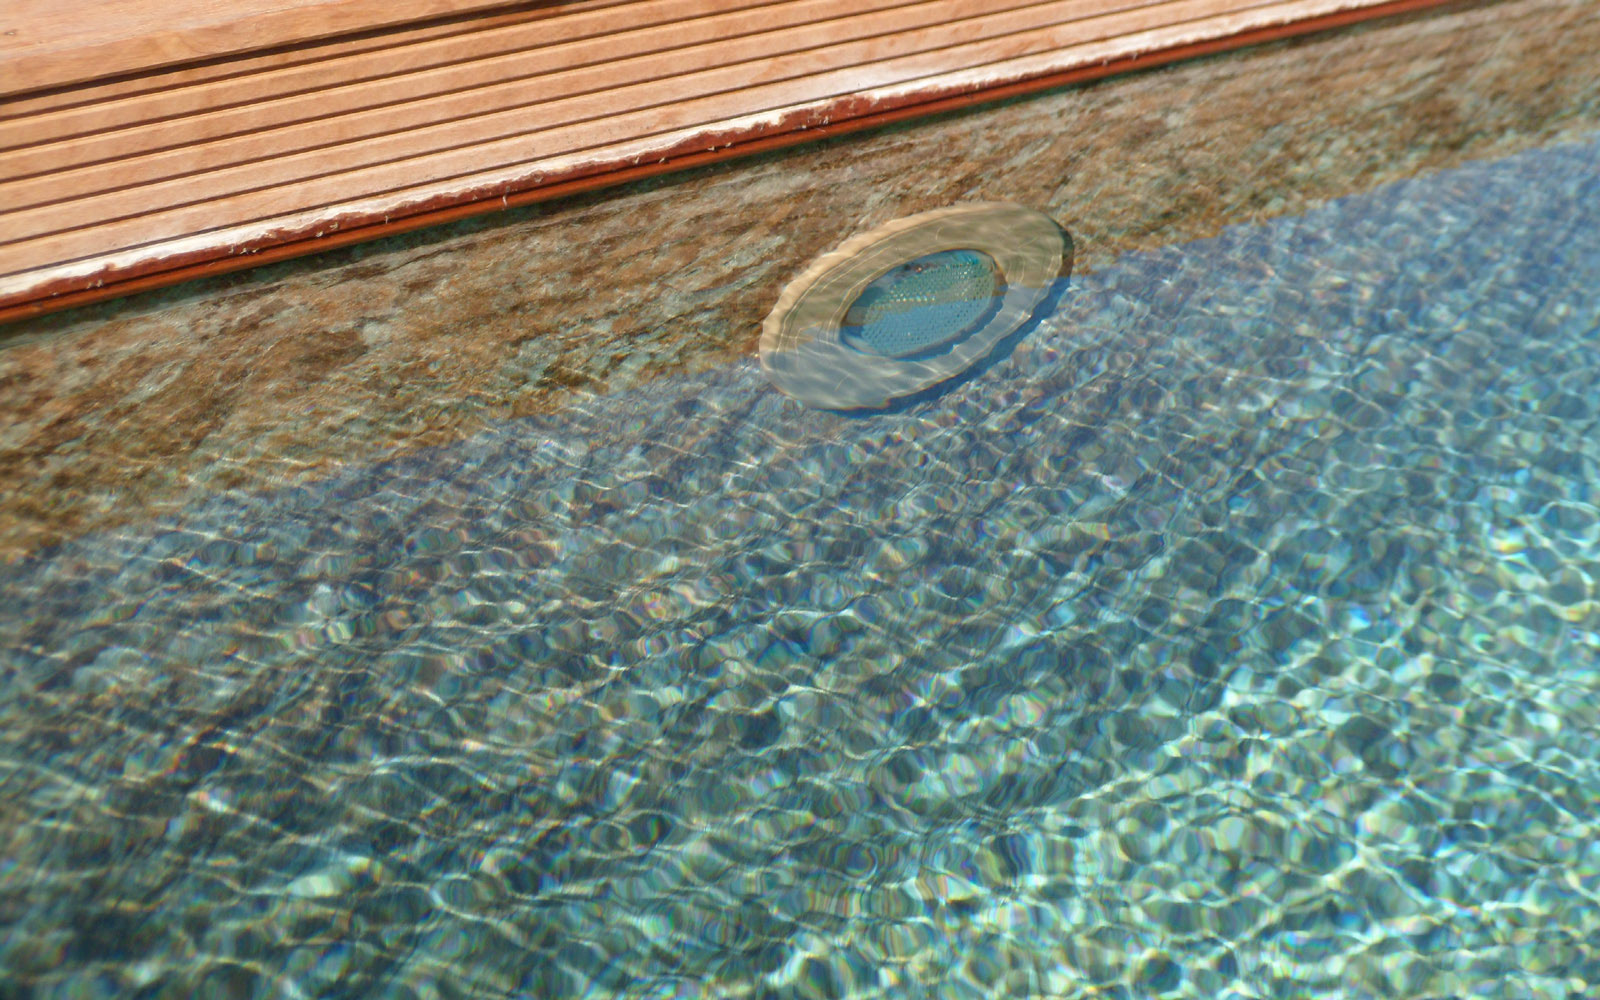 Poolfolie Reinigen Folien Farbe Alkorplan Touch Authentic Pool And More Gmbh